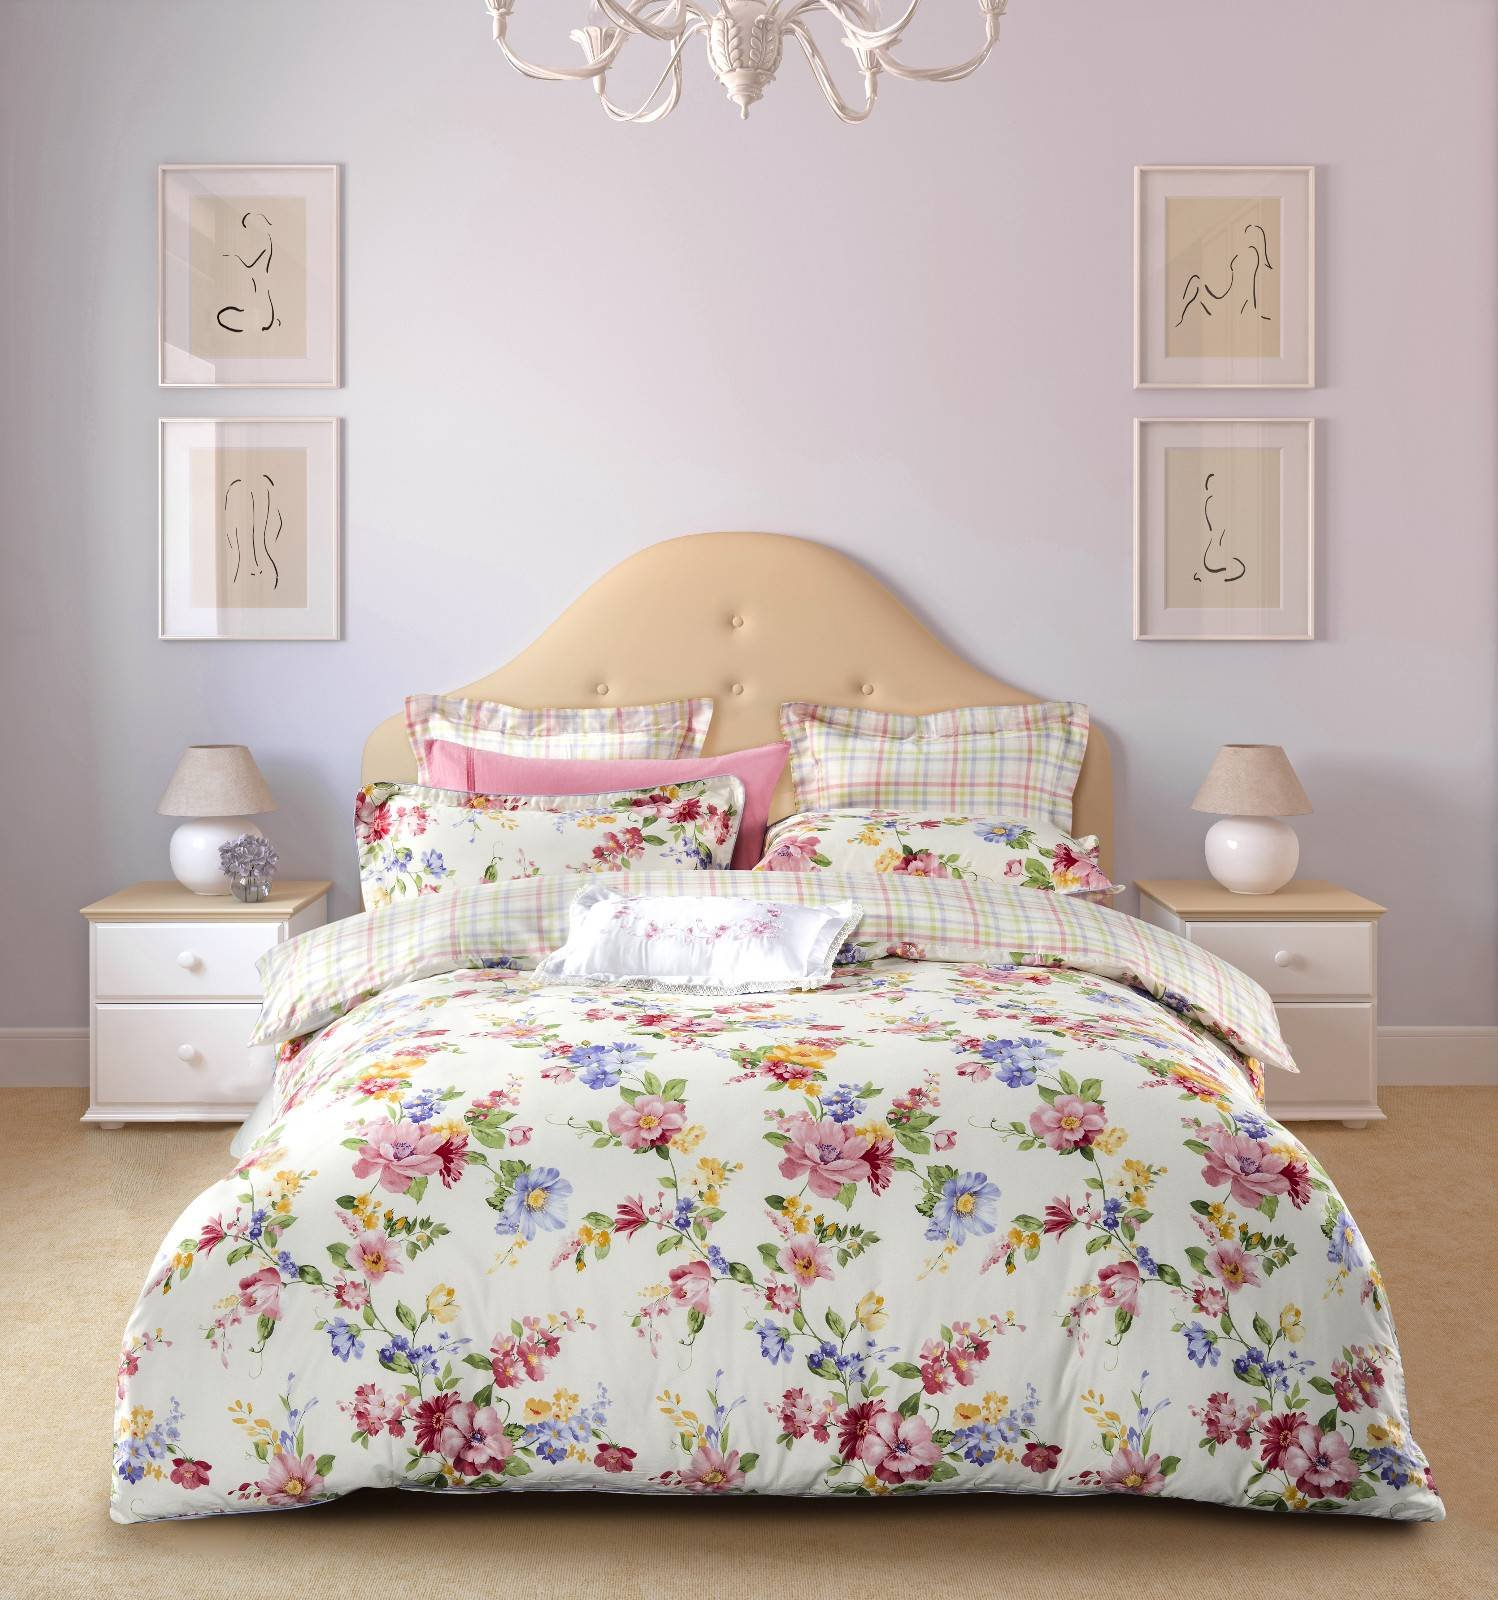 Patterned Cotton Floral Printing Bedroom Set  6786